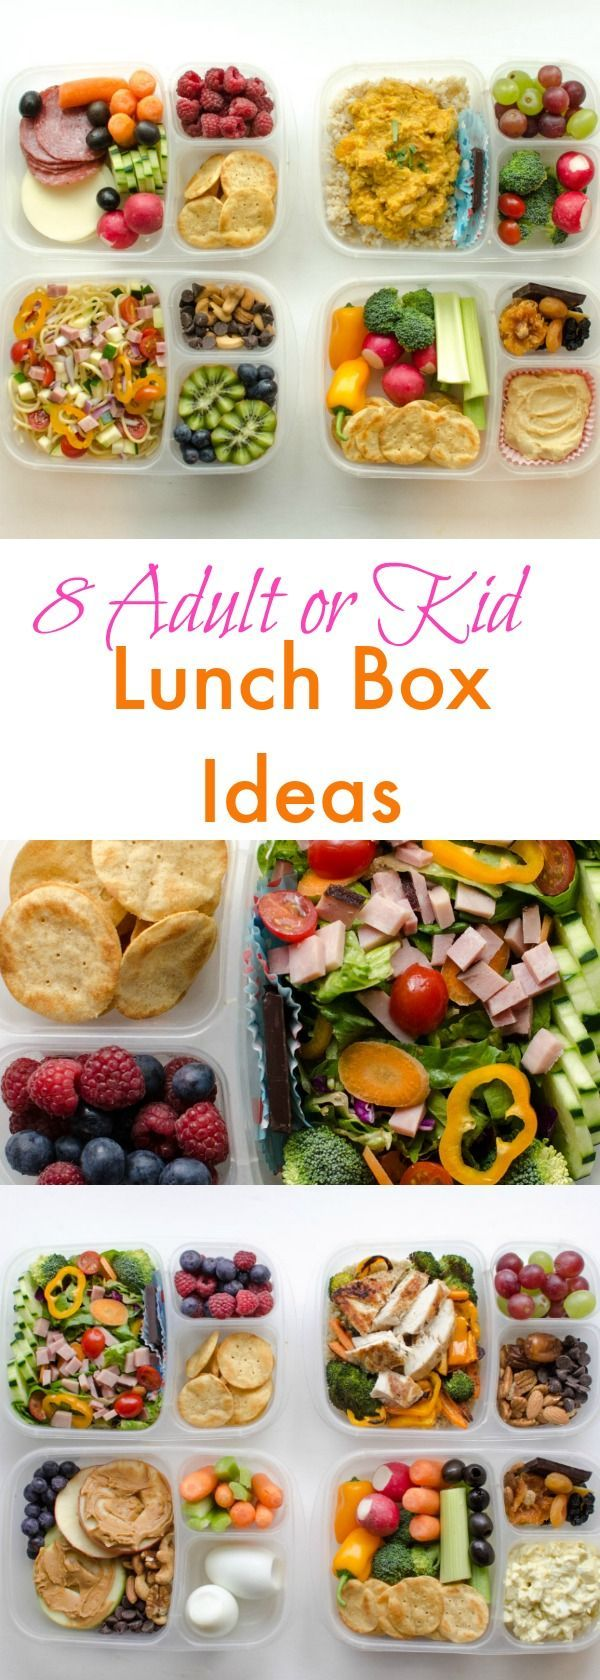 25 best ideas about lunch box containers on pinterest planet box boxes for packing and lunch. Black Bedroom Furniture Sets. Home Design Ideas